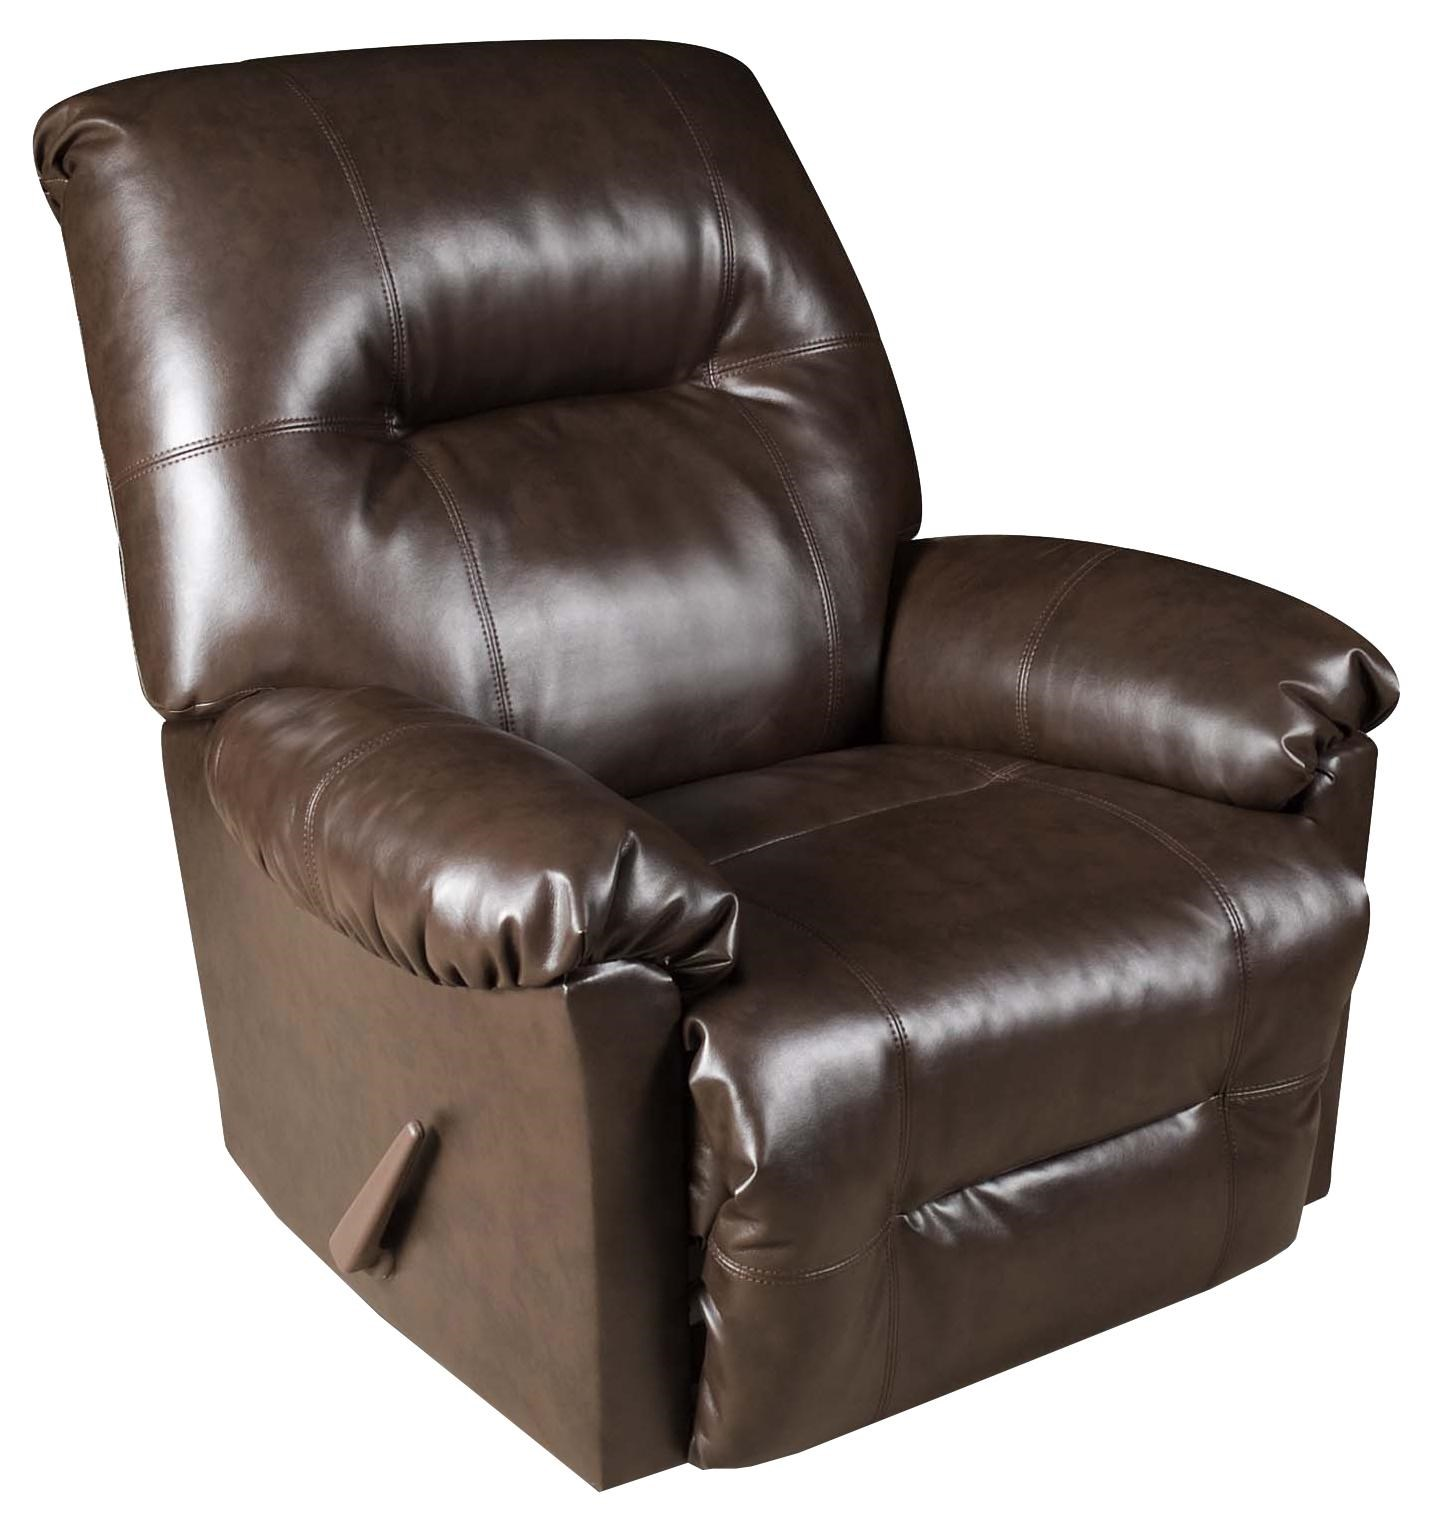 American Furniture Recliners Casual Styled Furniture Recliner for Family Rooms - VanDrie Home Furnishings - Three Way Recliners  sc 1 st  VanDrie Home Furnishings & American Furniture Recliners Casual Styled Furniture Recliner for ... islam-shia.org